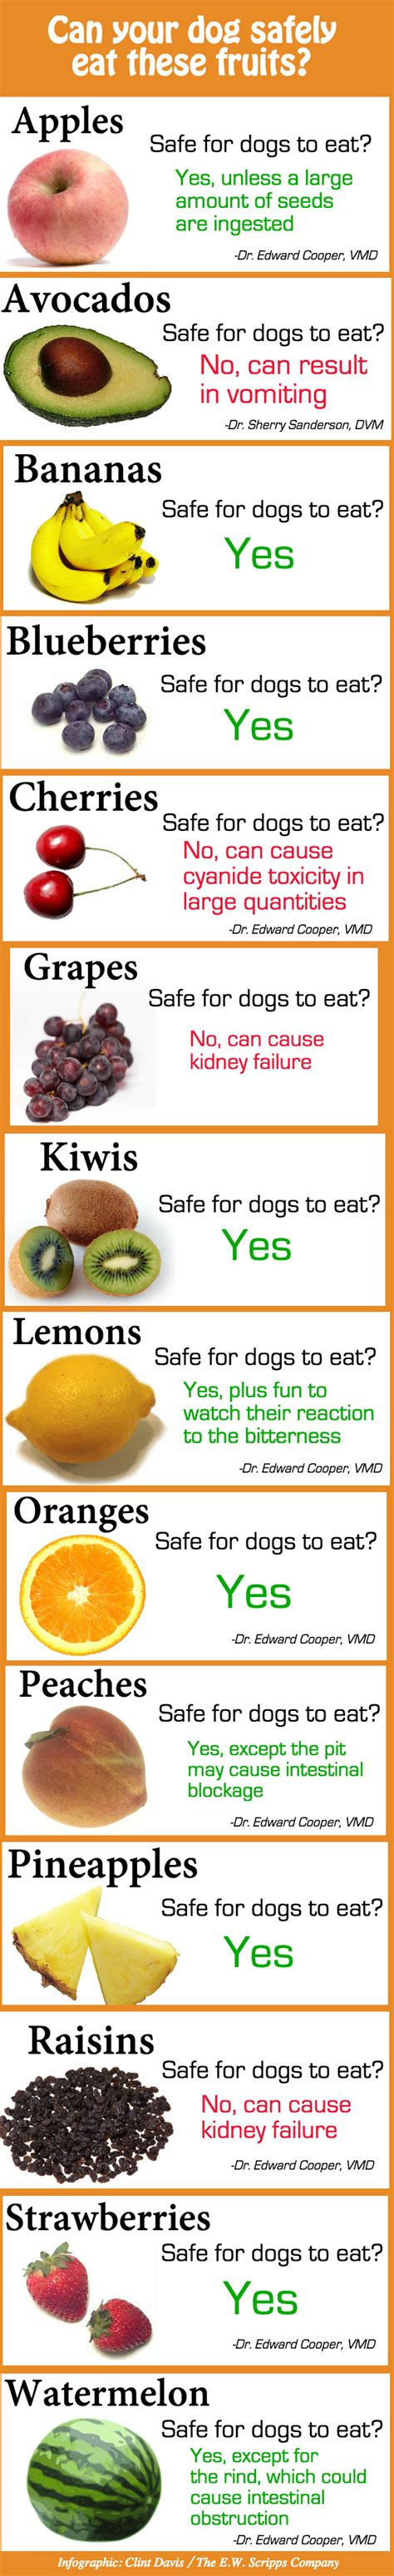 fruits dogs can eat can your safely eat these fruits tfe times